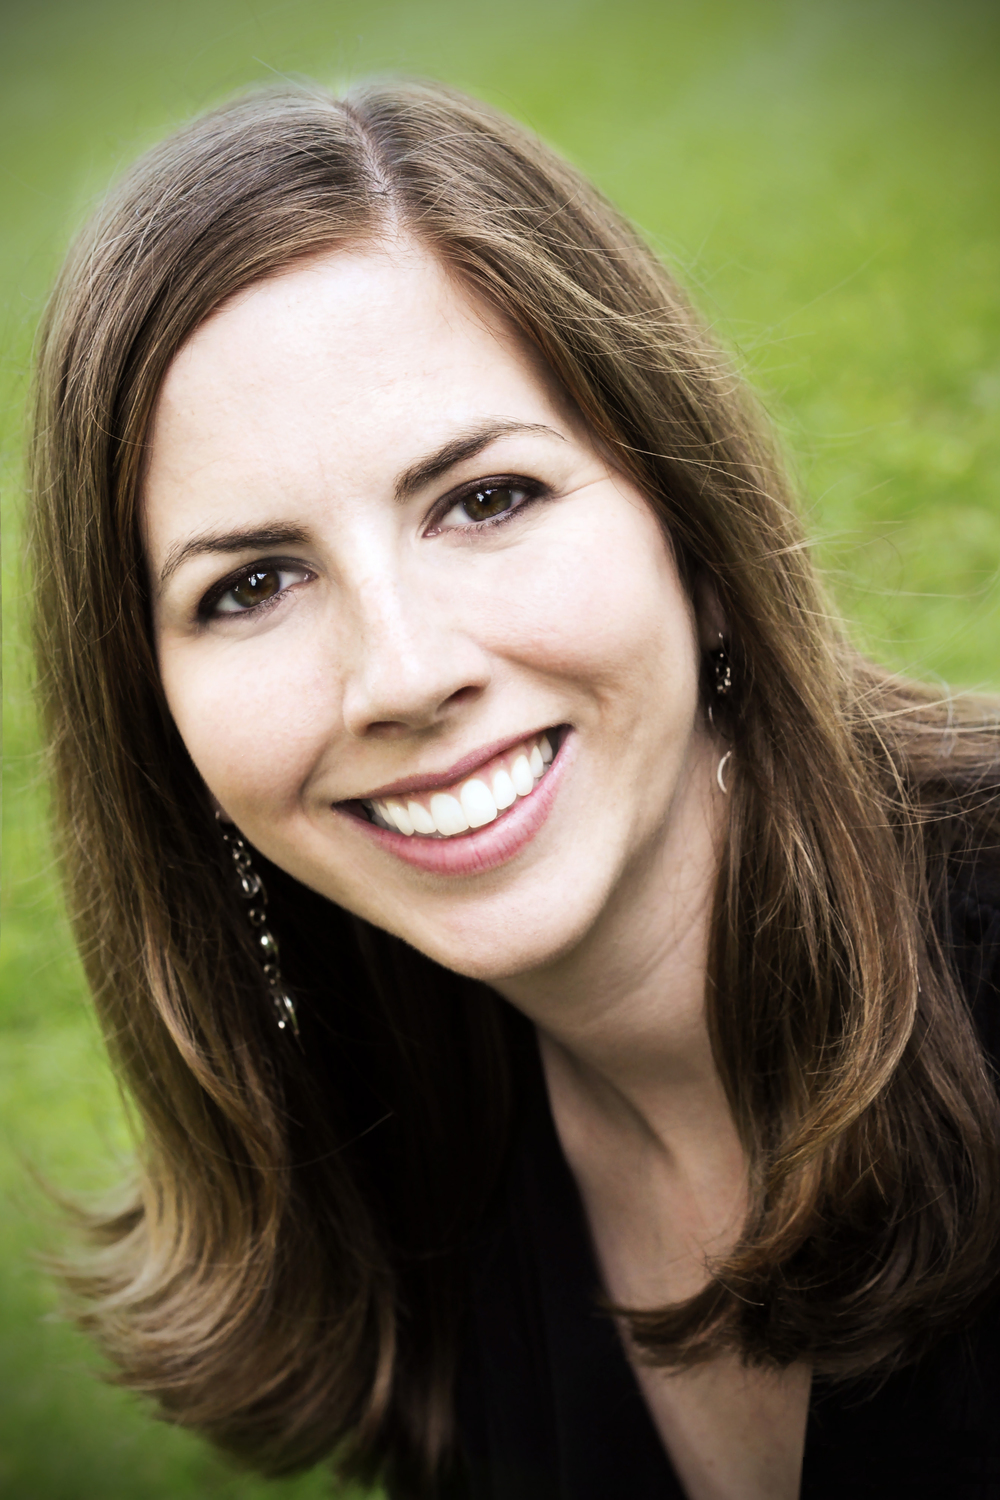 Jessica Berish is the Director of Admissions and Marketing for Wisconsin Virtual Learning